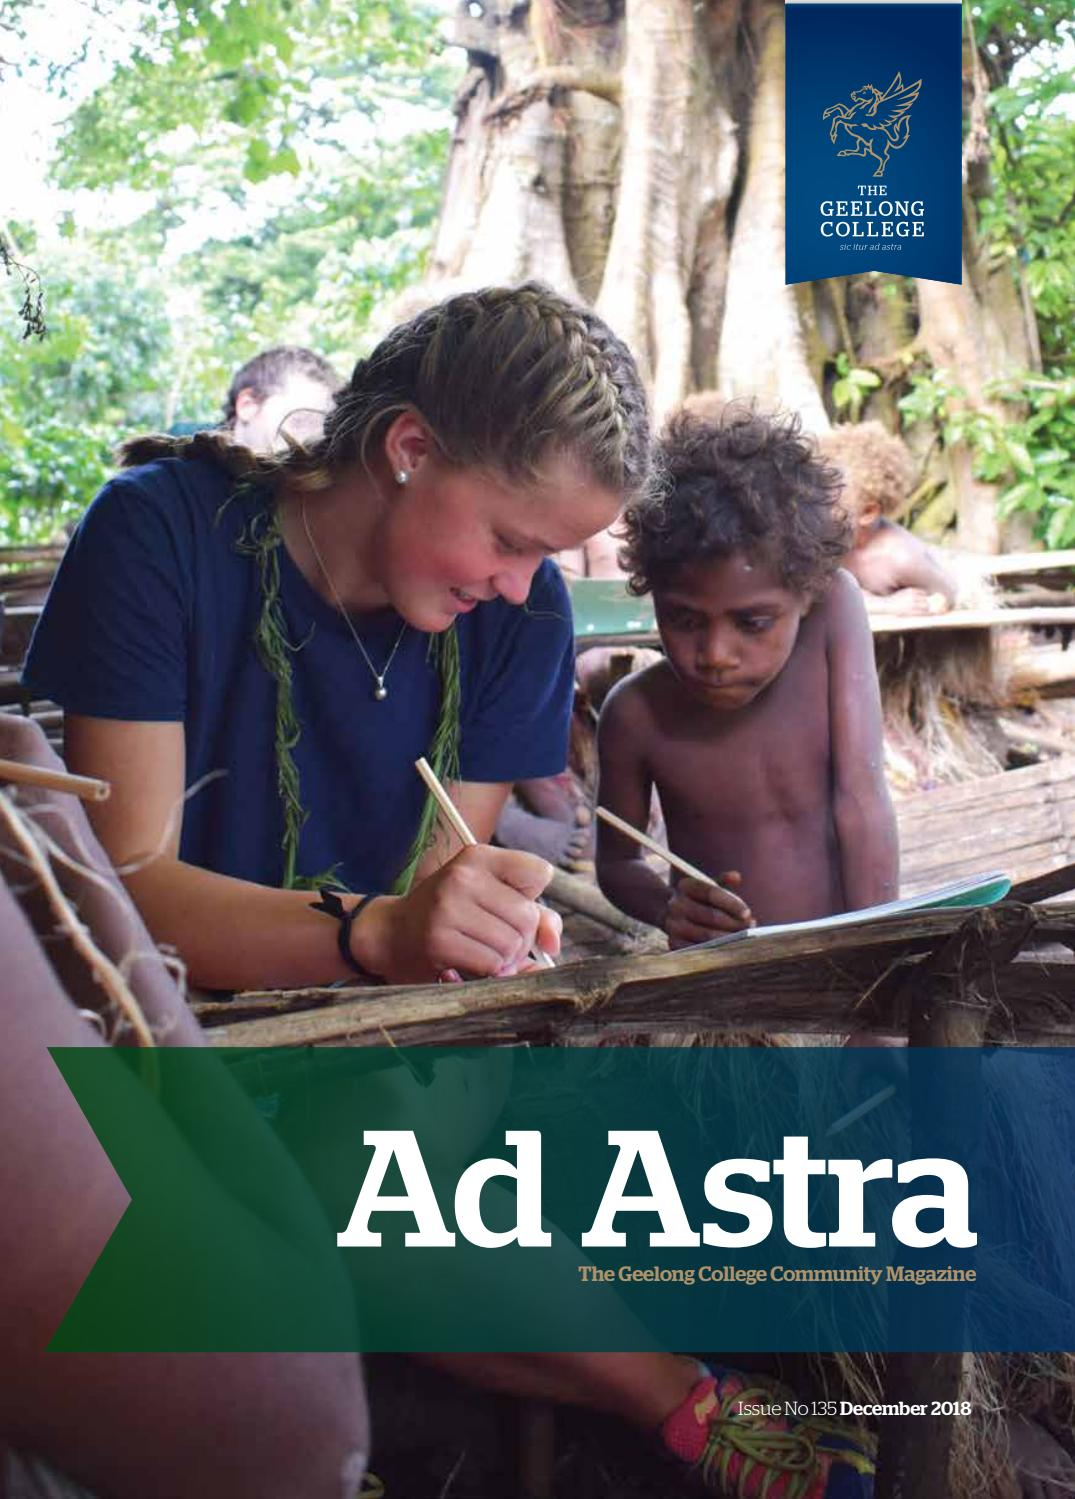 Ad Astra No  135 Dec 2018 by Geelong College - issuu